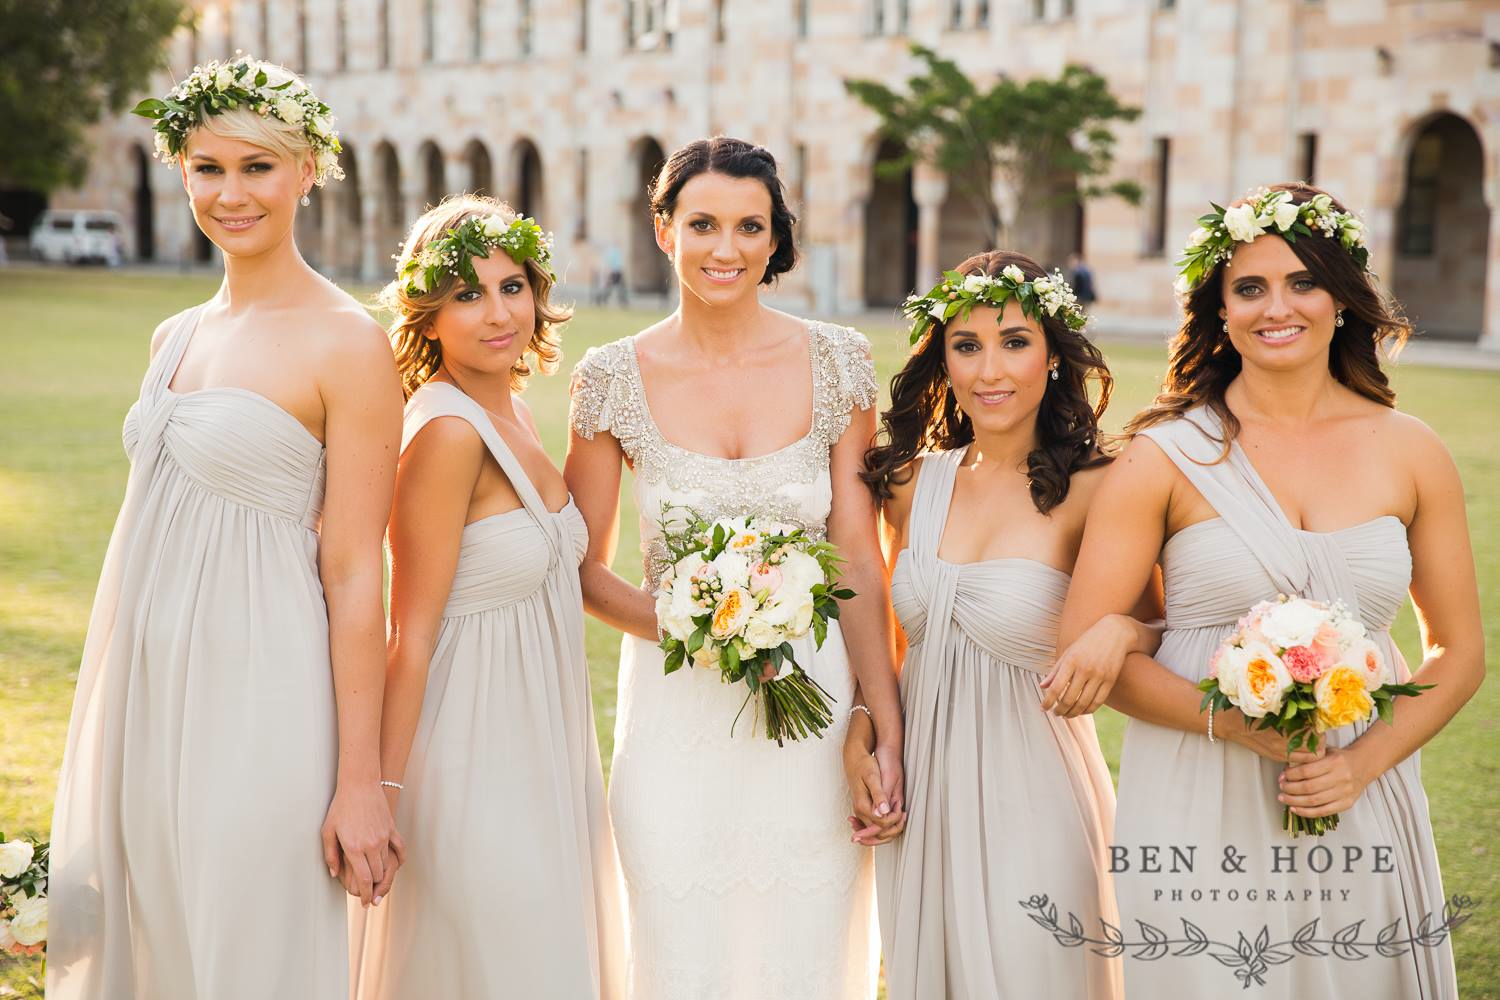 Natasha millani bridesmaid dresses online store natasha millani real bridesmaids in off shoulder bridesmaid dresses in grey colour ombrellifo Image collections